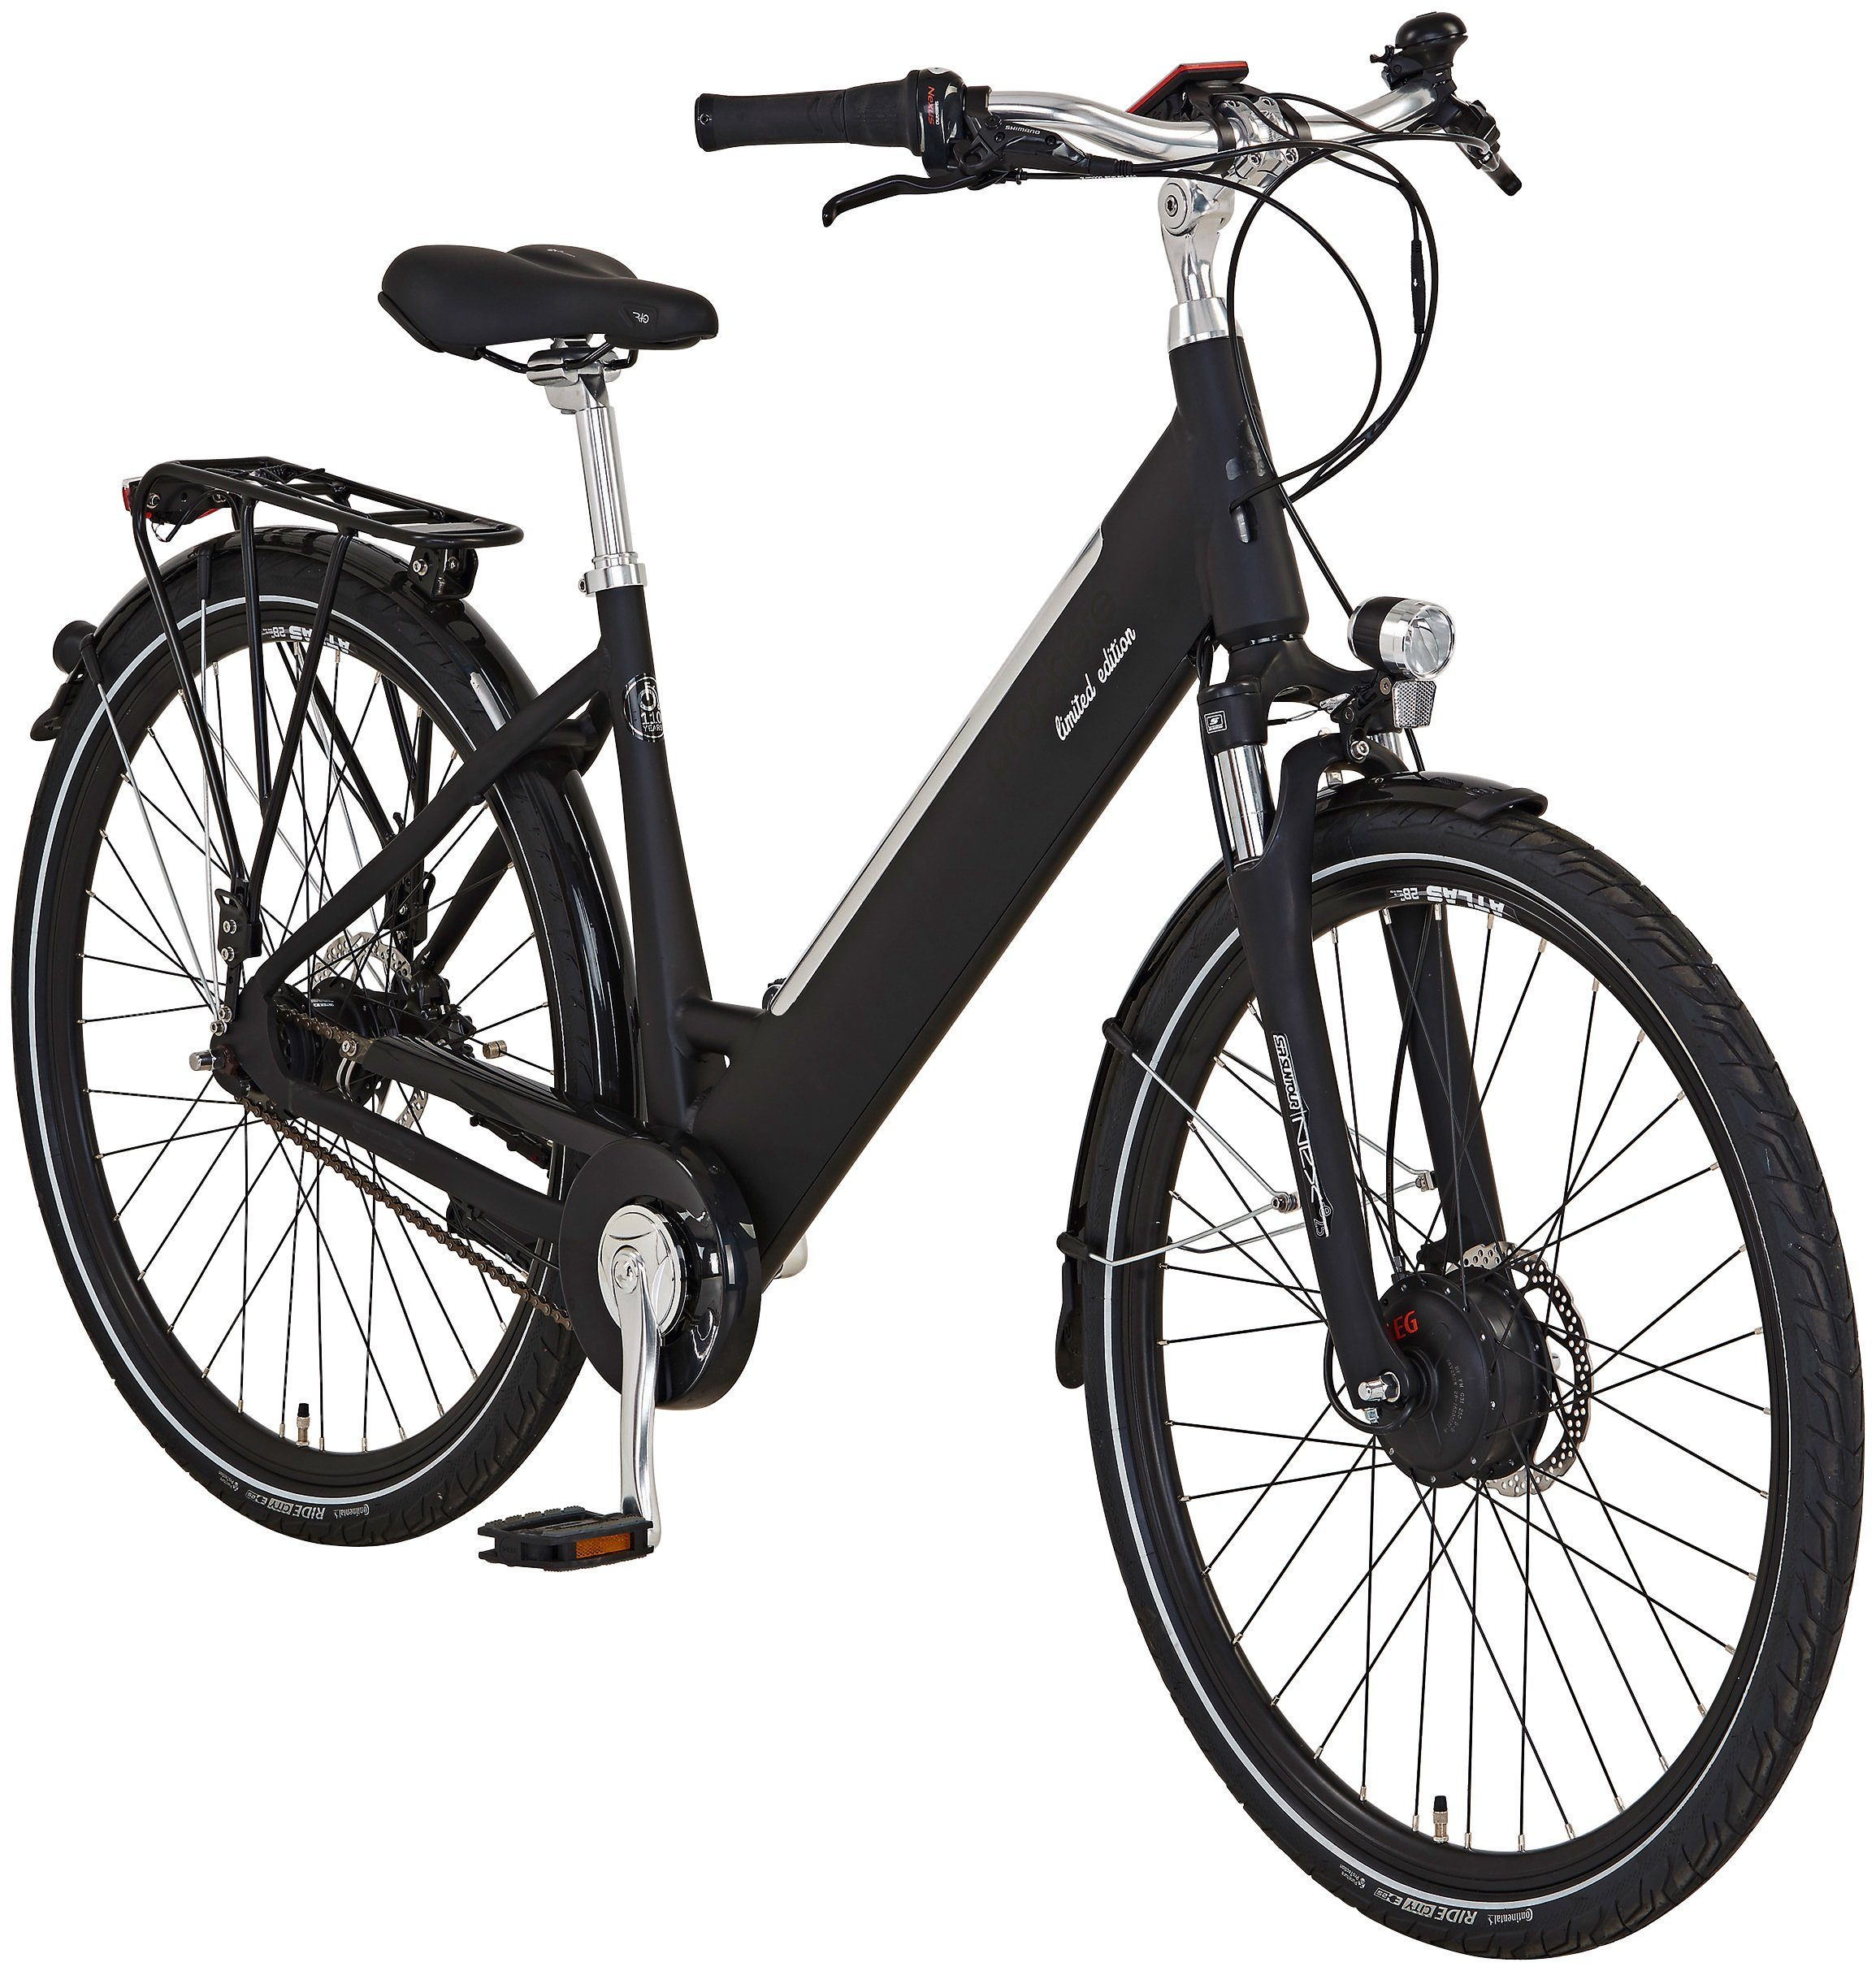 PROPHETE E-Bike City »Edition 110 Jahre«, 28 Zoll, 7 Gang, Frontmotor, 490 Wh